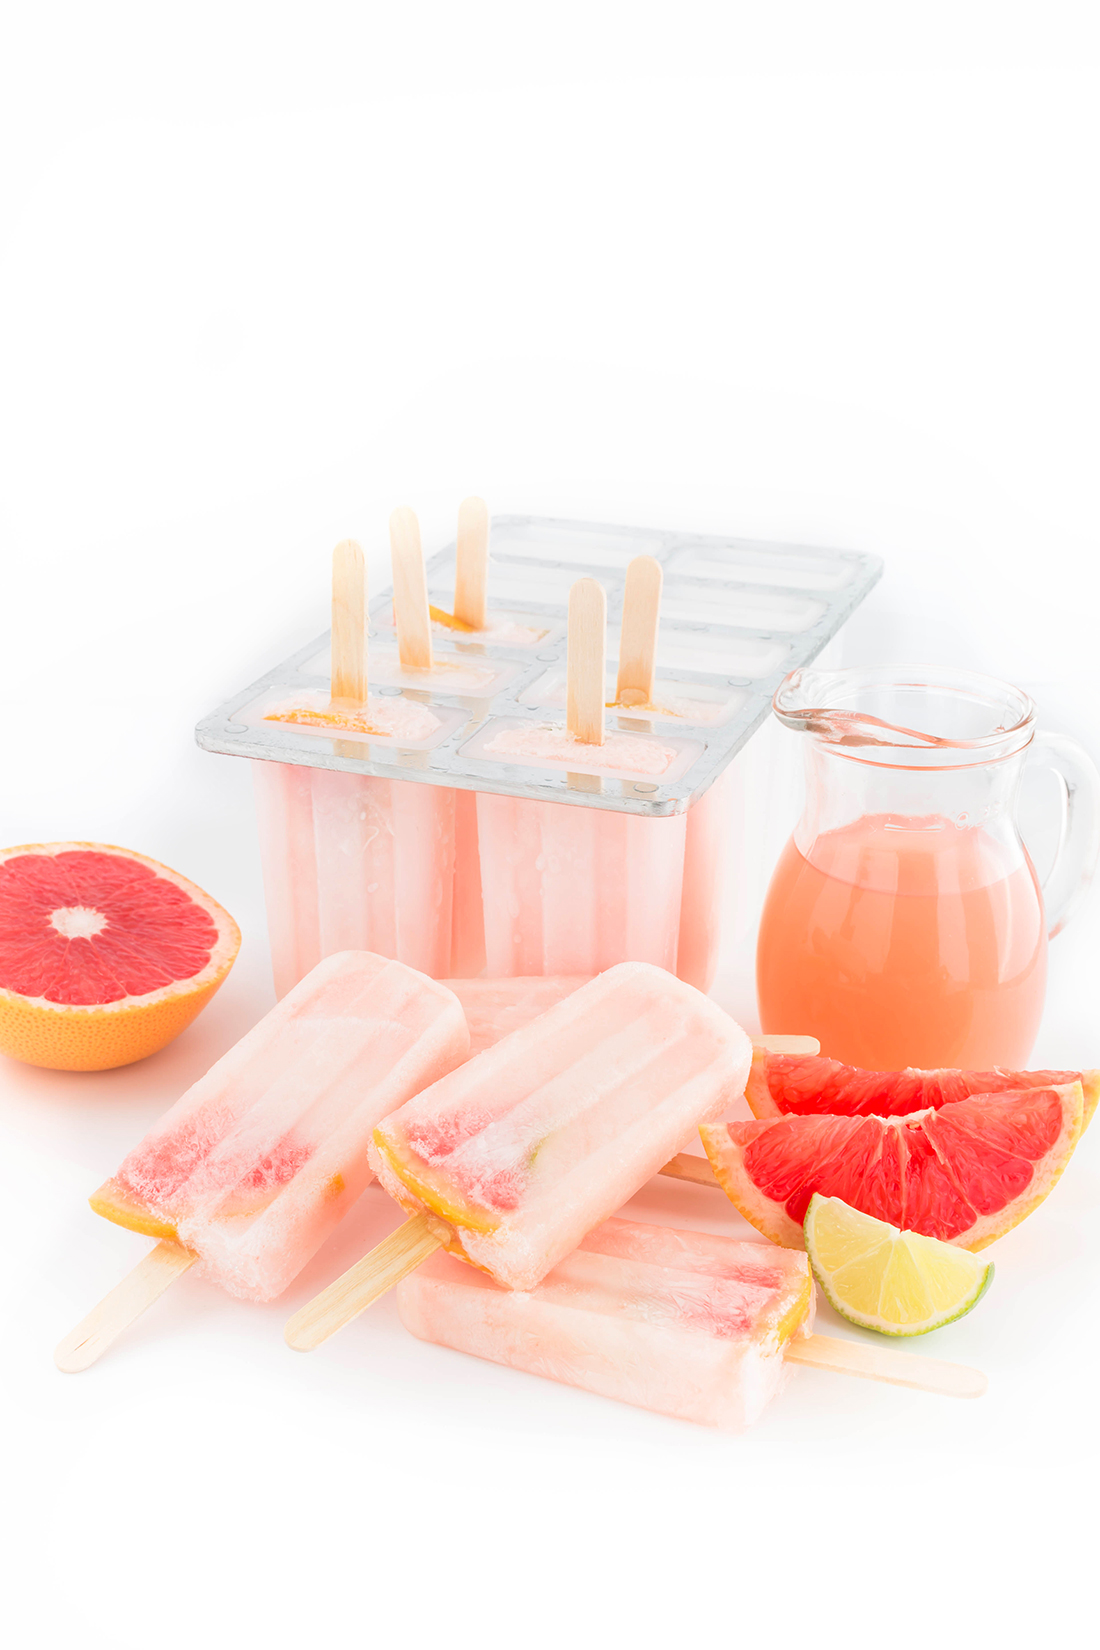 #vegan 3 ingredients SUGAR-FREE PINK GRAPEFRUIT POPSICLES - GHIACCIOLI al POMPELMO ROSA 3 ingredienti idratanti limonata al pompelmo recipe